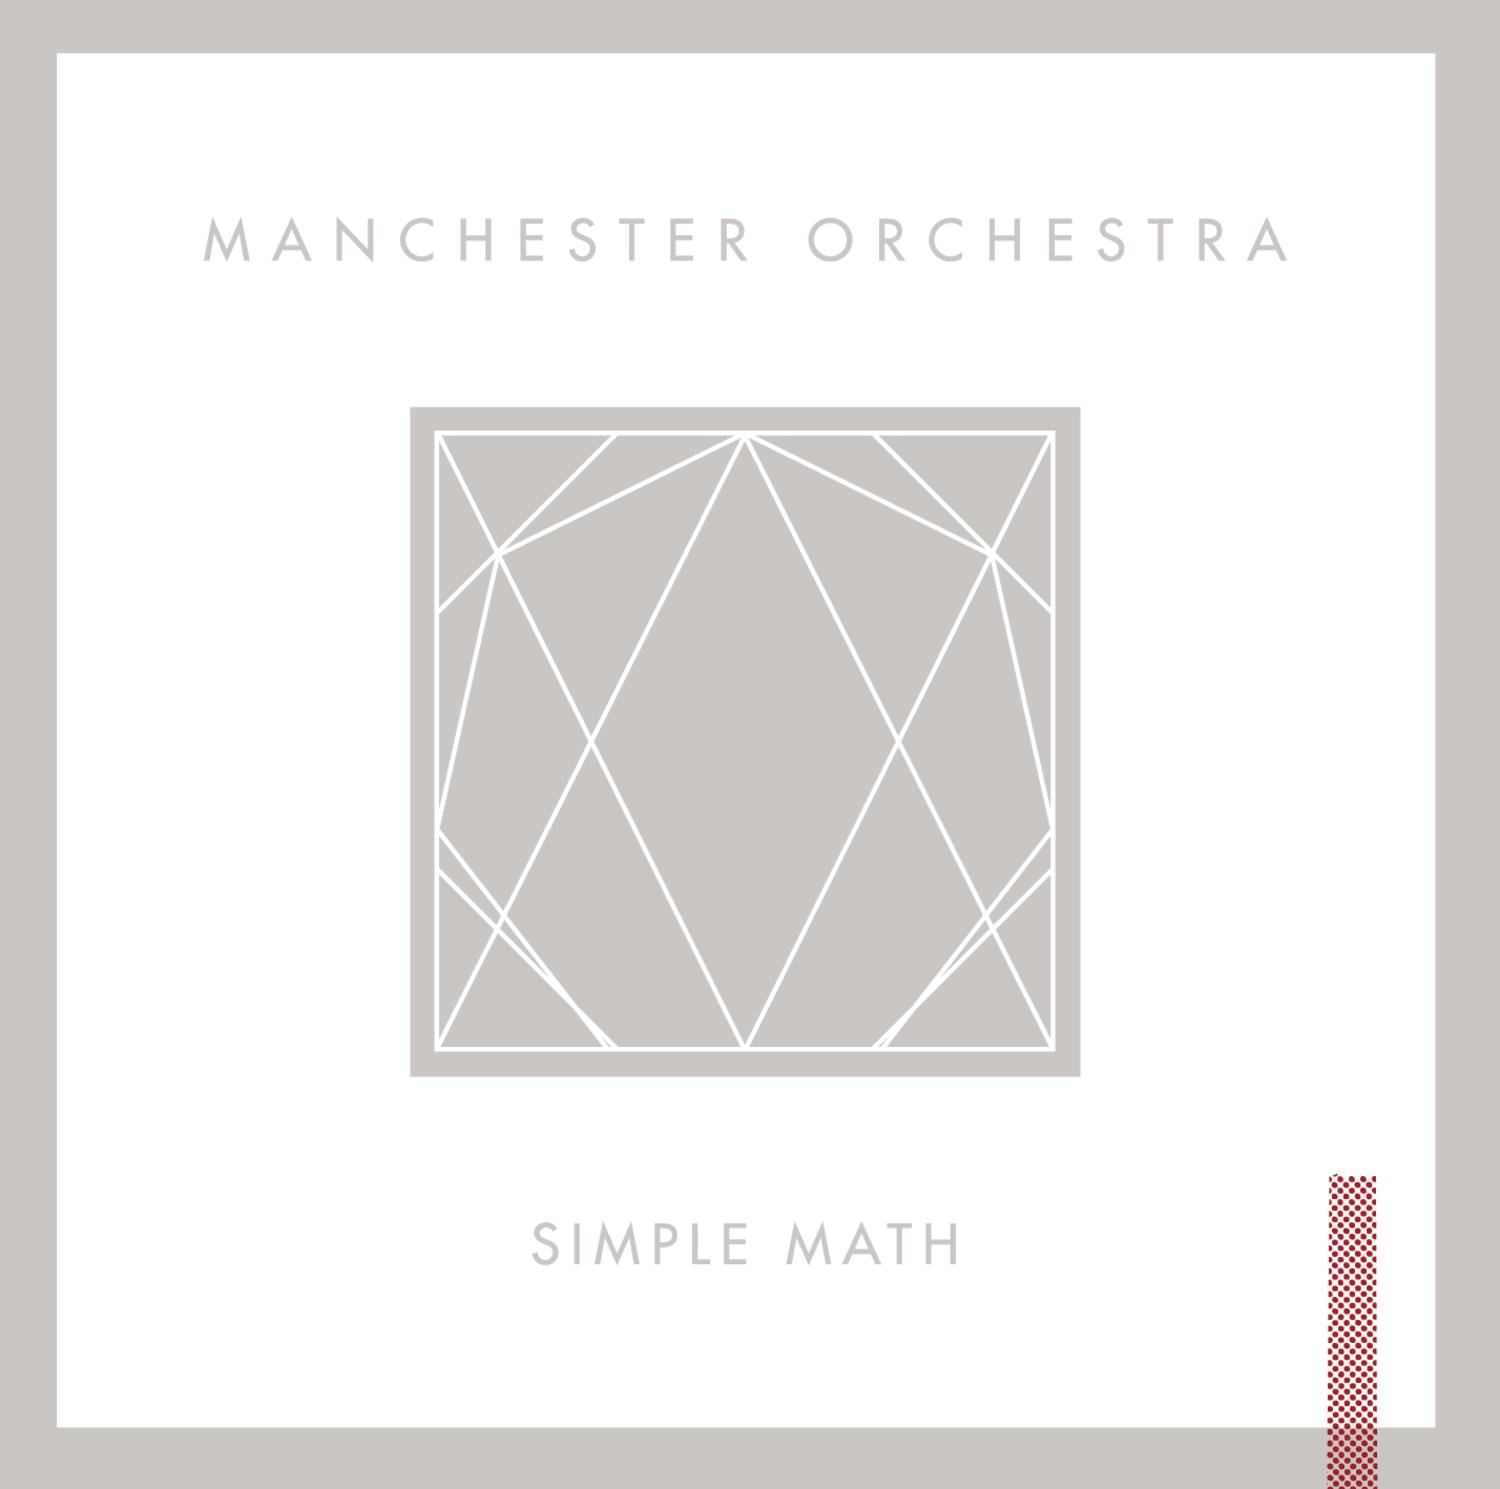 Worksheet Simple Math manchester orchestra simple math amazon com music